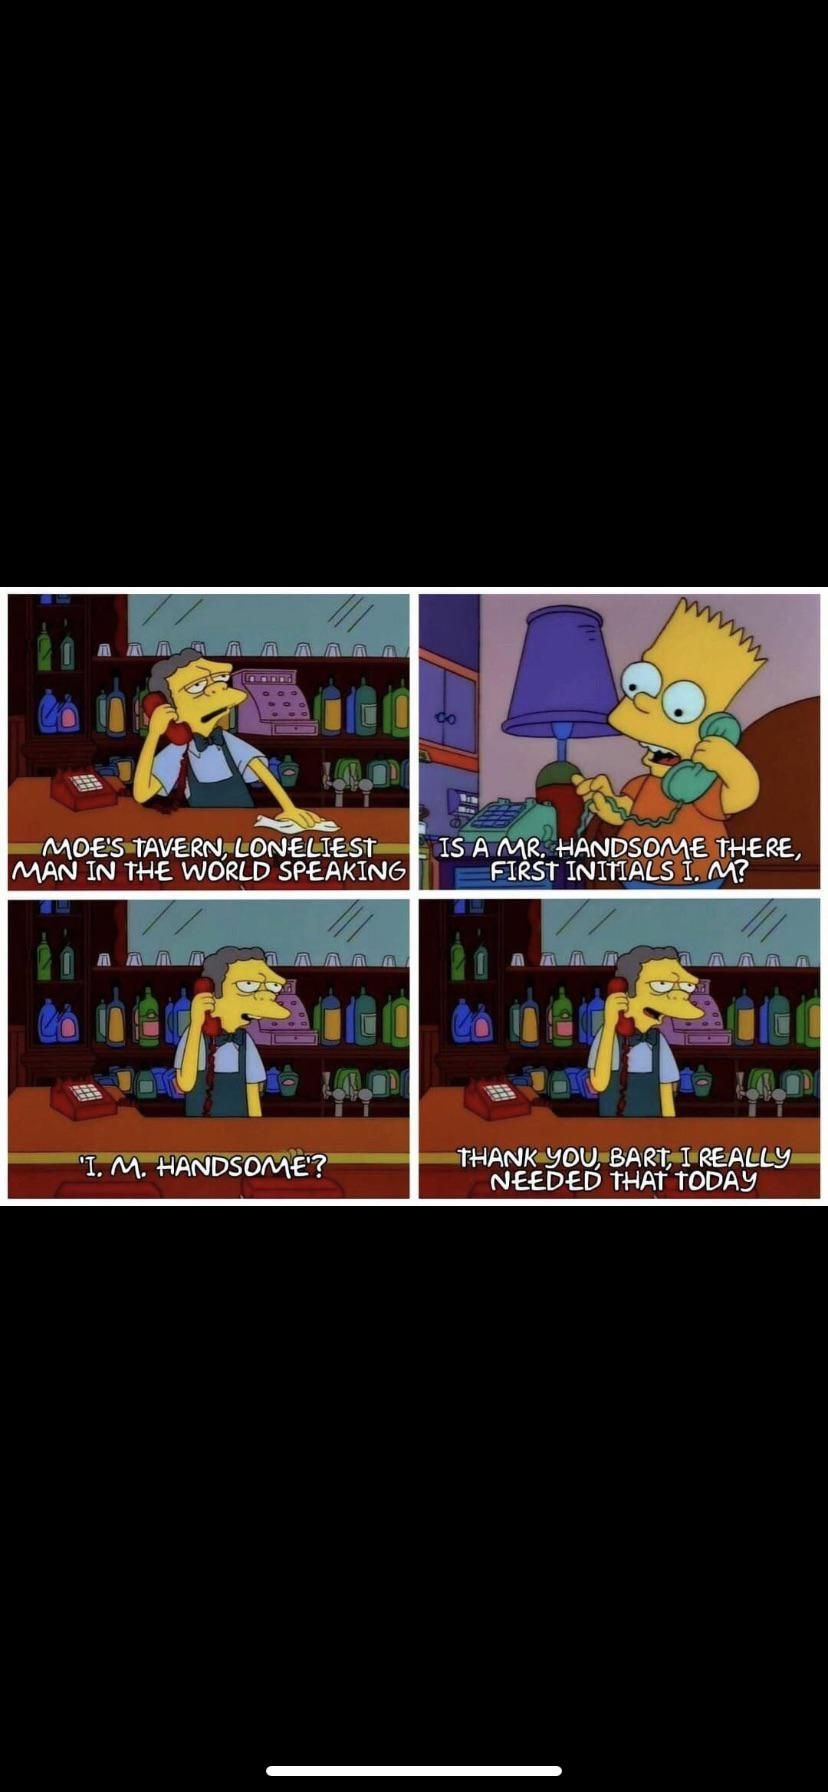 Bart can be nice too! Or maybe he just wants a beer...